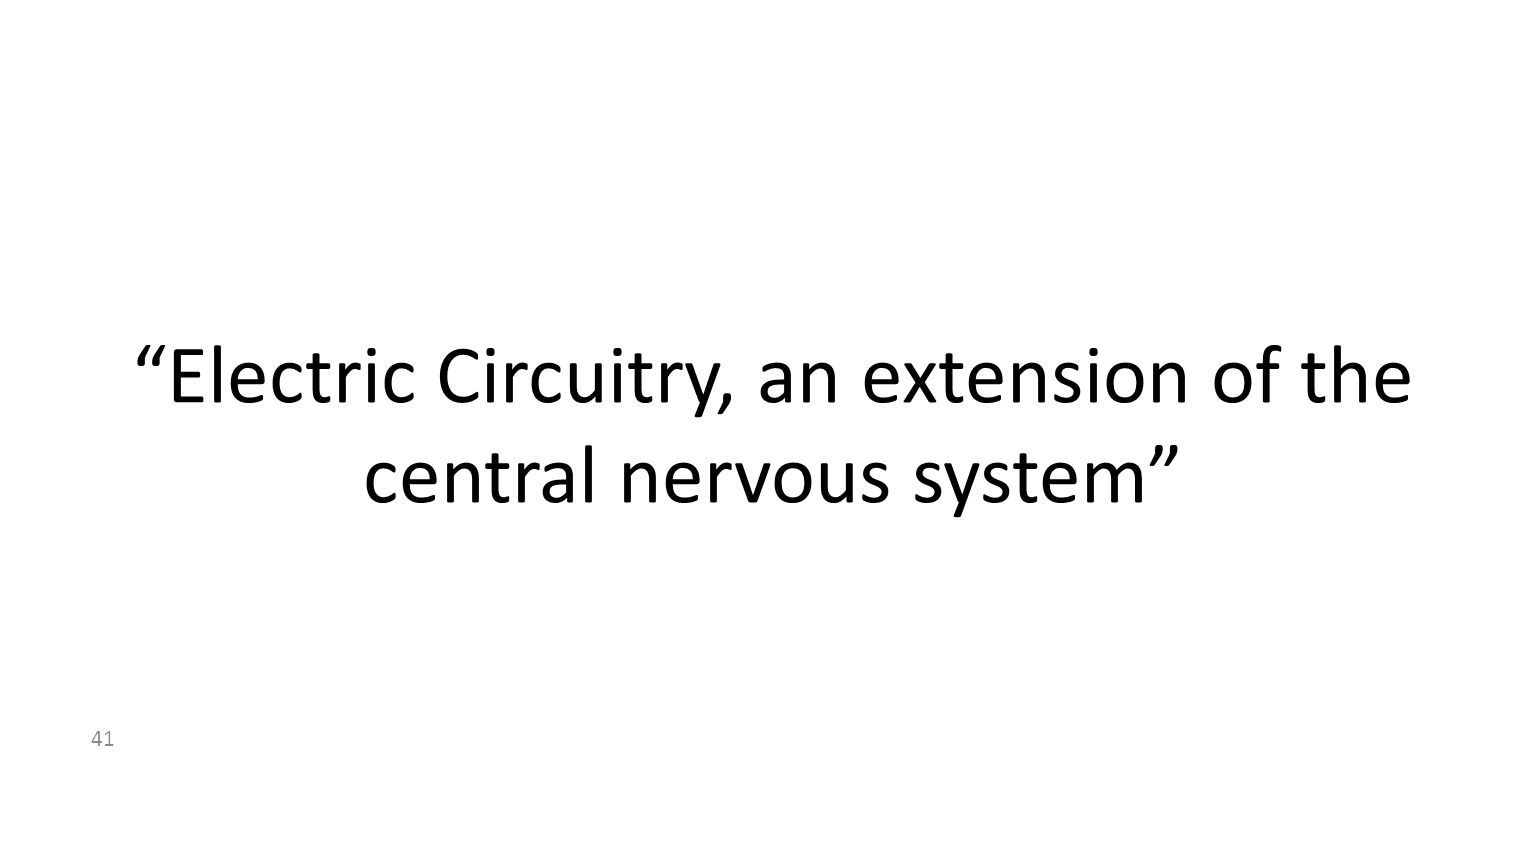 41 Electric Circuitry, an extension of the central nervous system